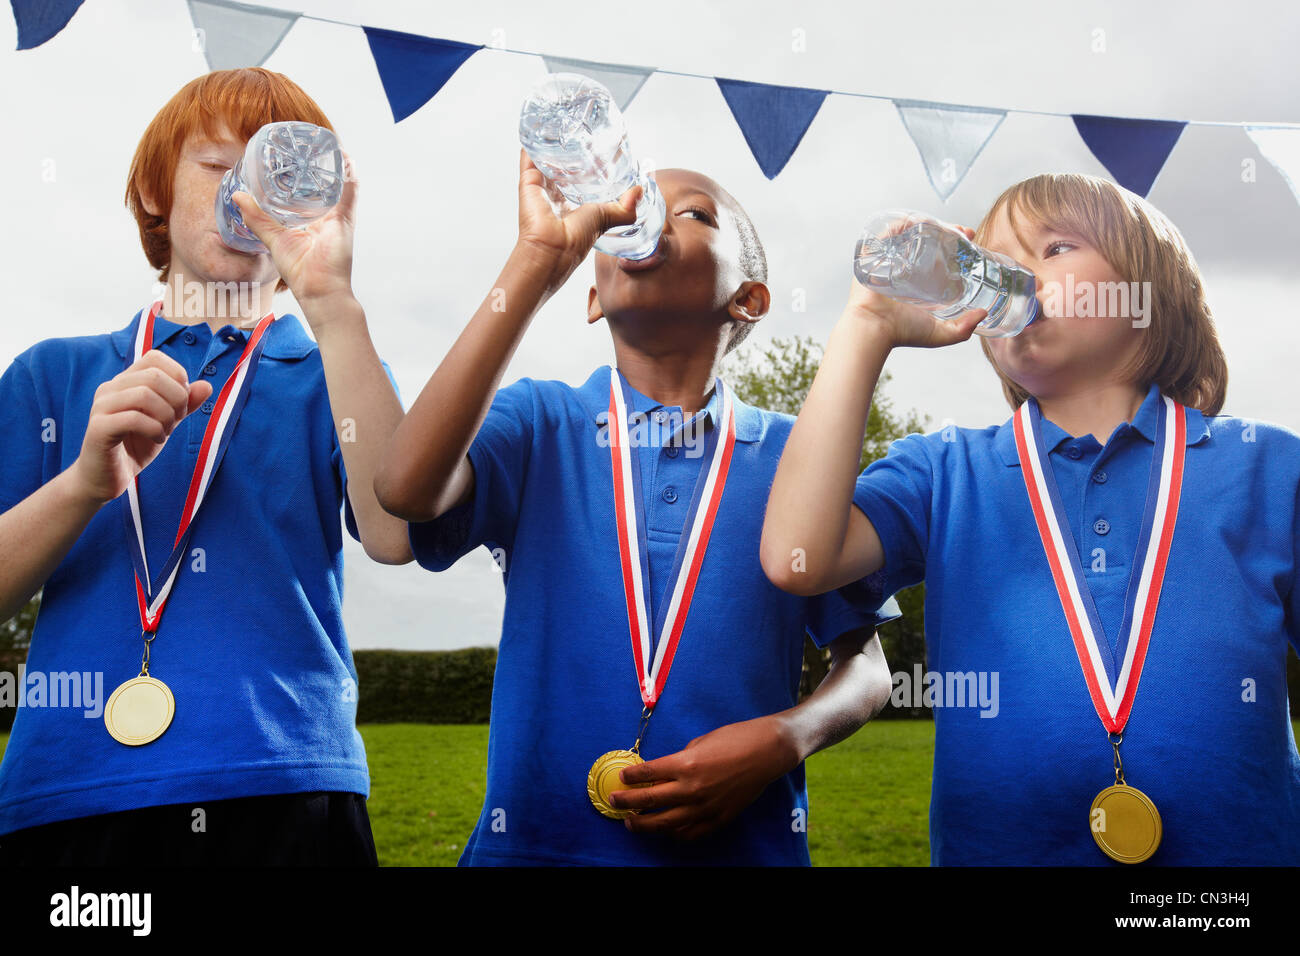 School boys with medals drinking water after sports event - Stock Image